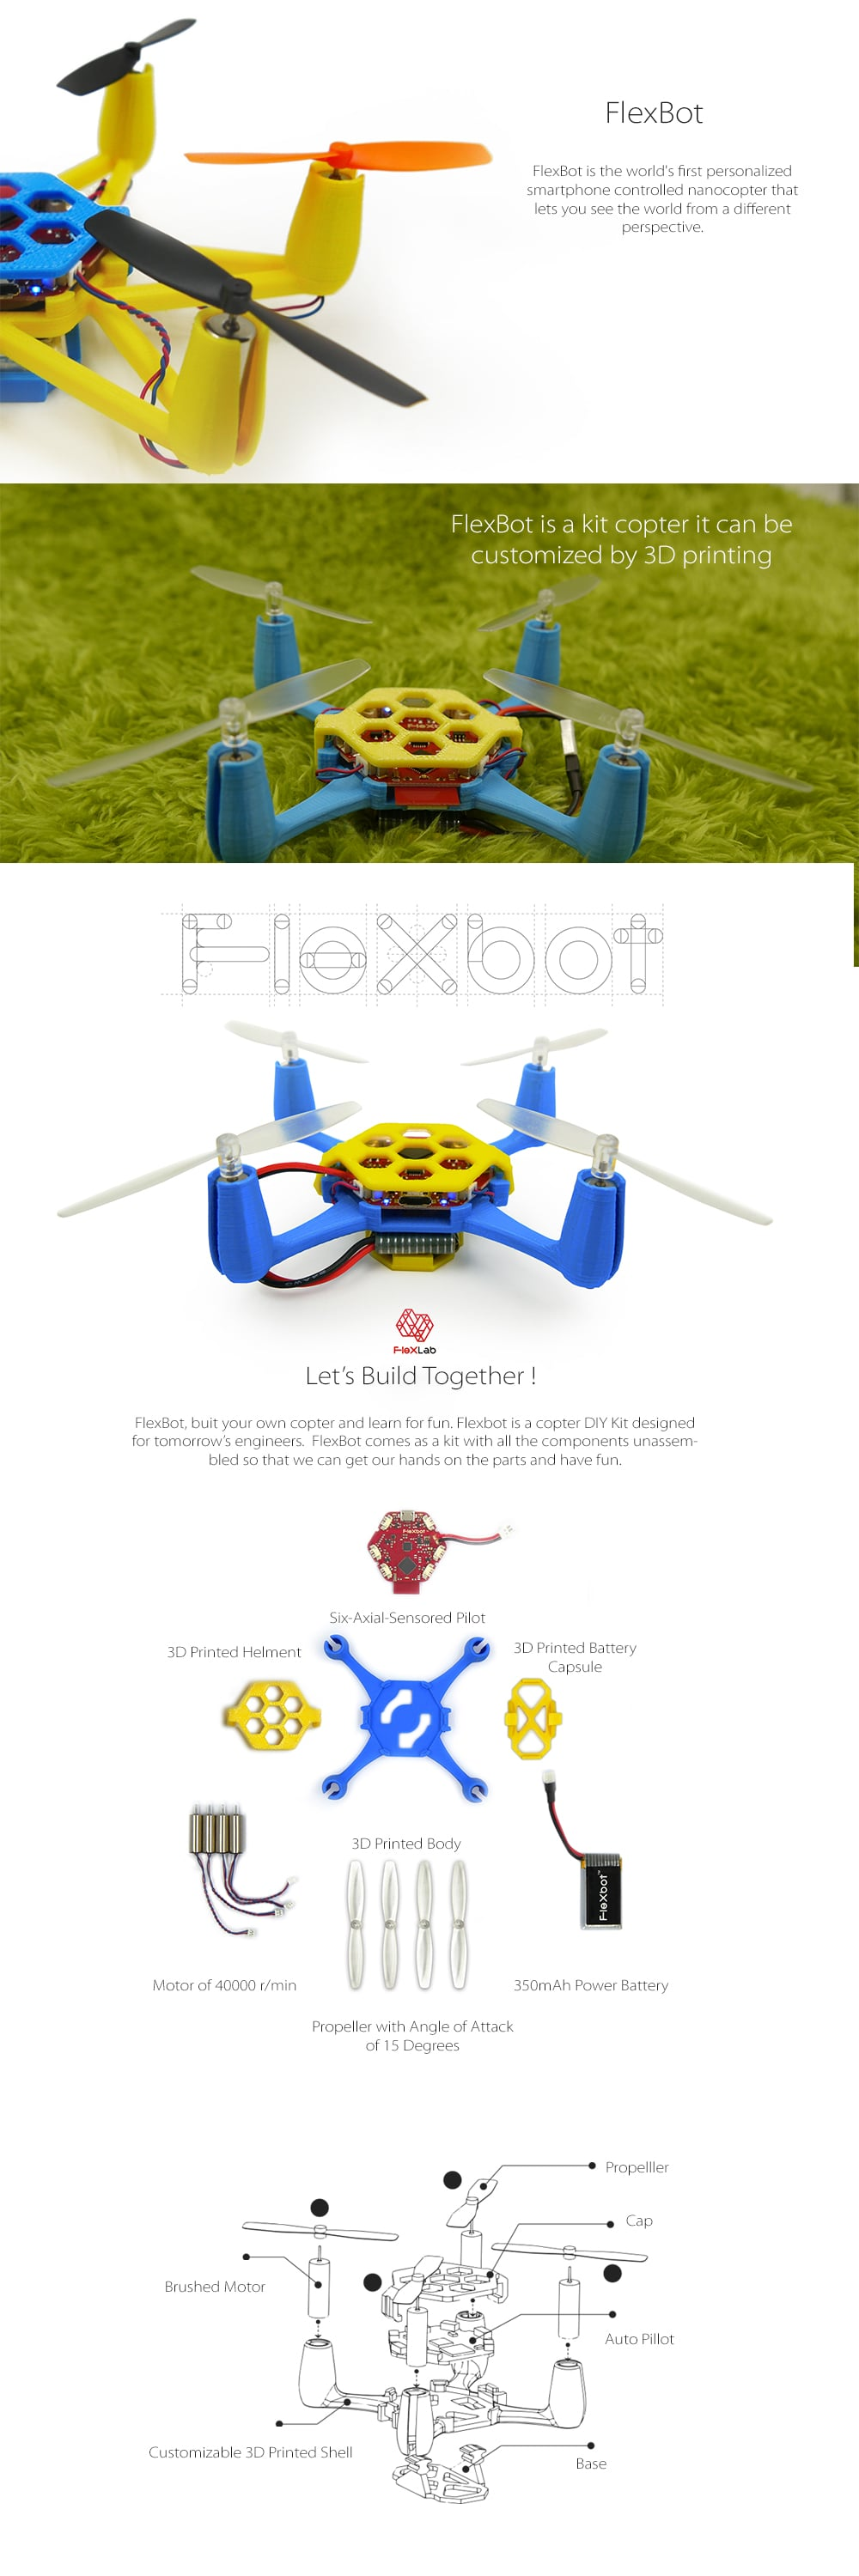 Flexbot Drone Piloting Made Easy!